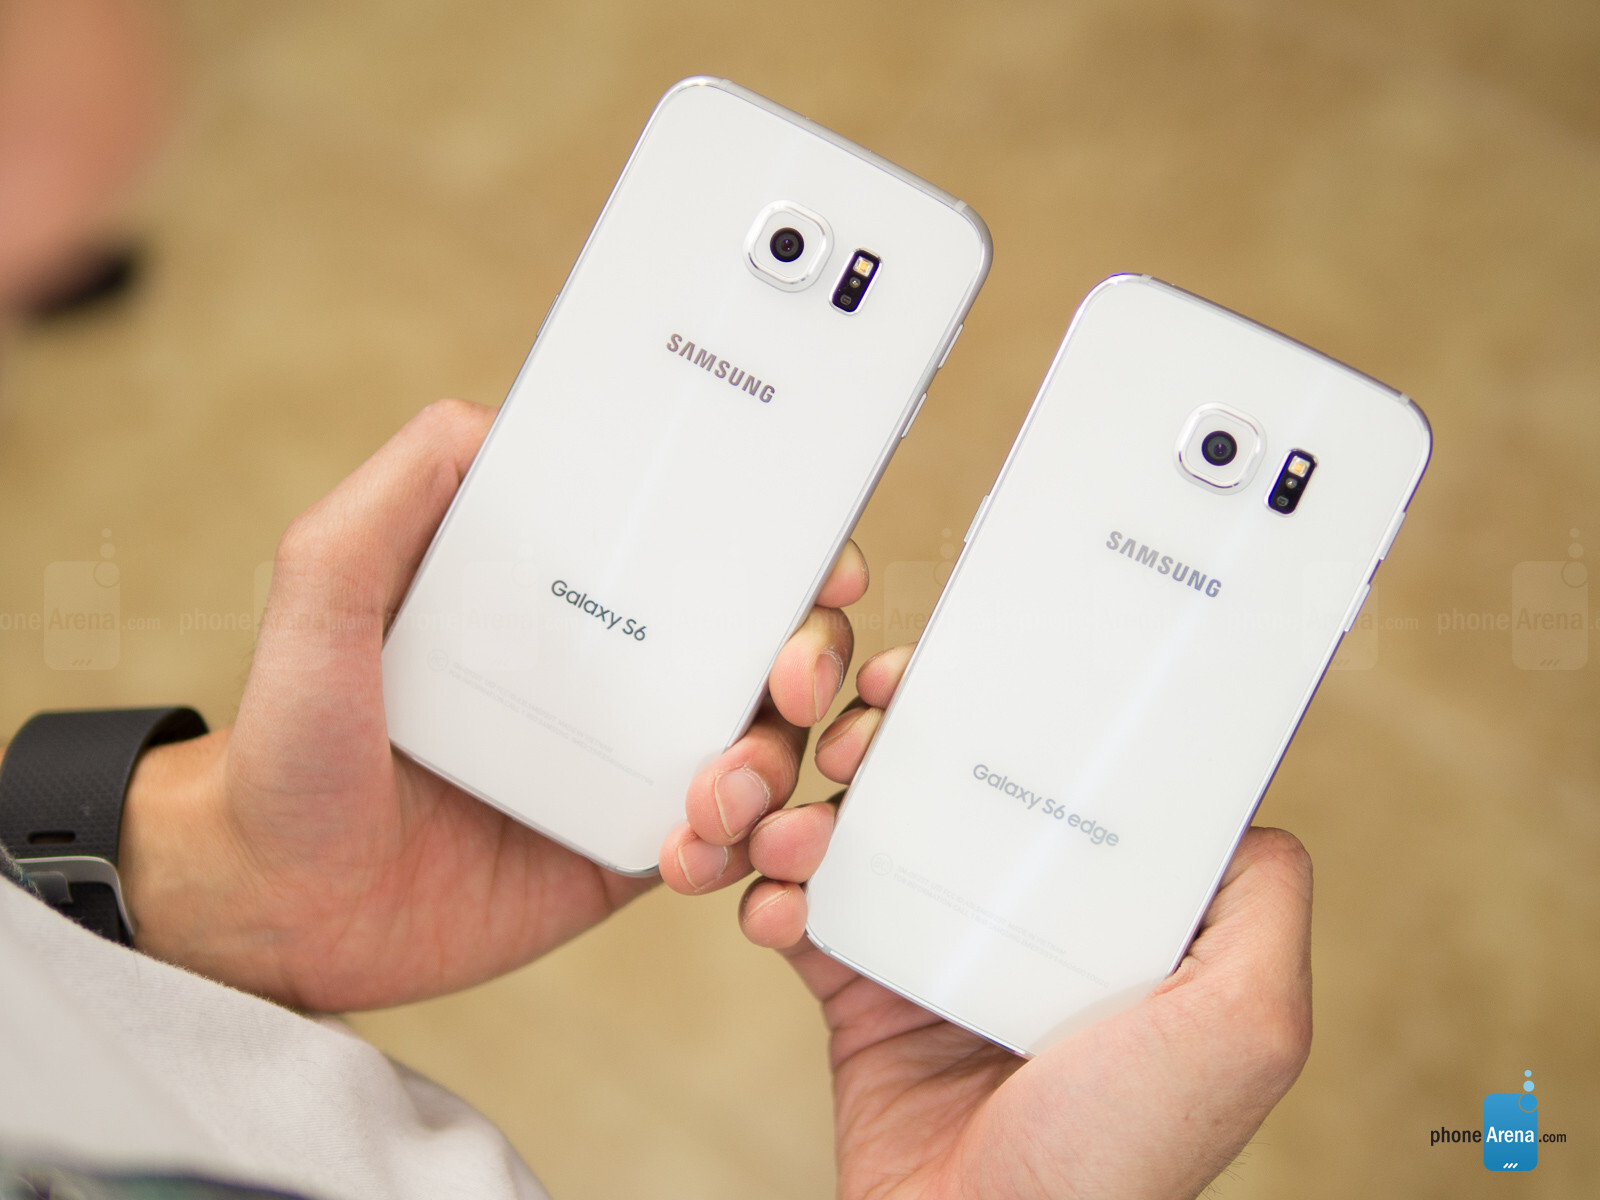 Latest Samsung ad shows how the Galaxy S6 can give you ...